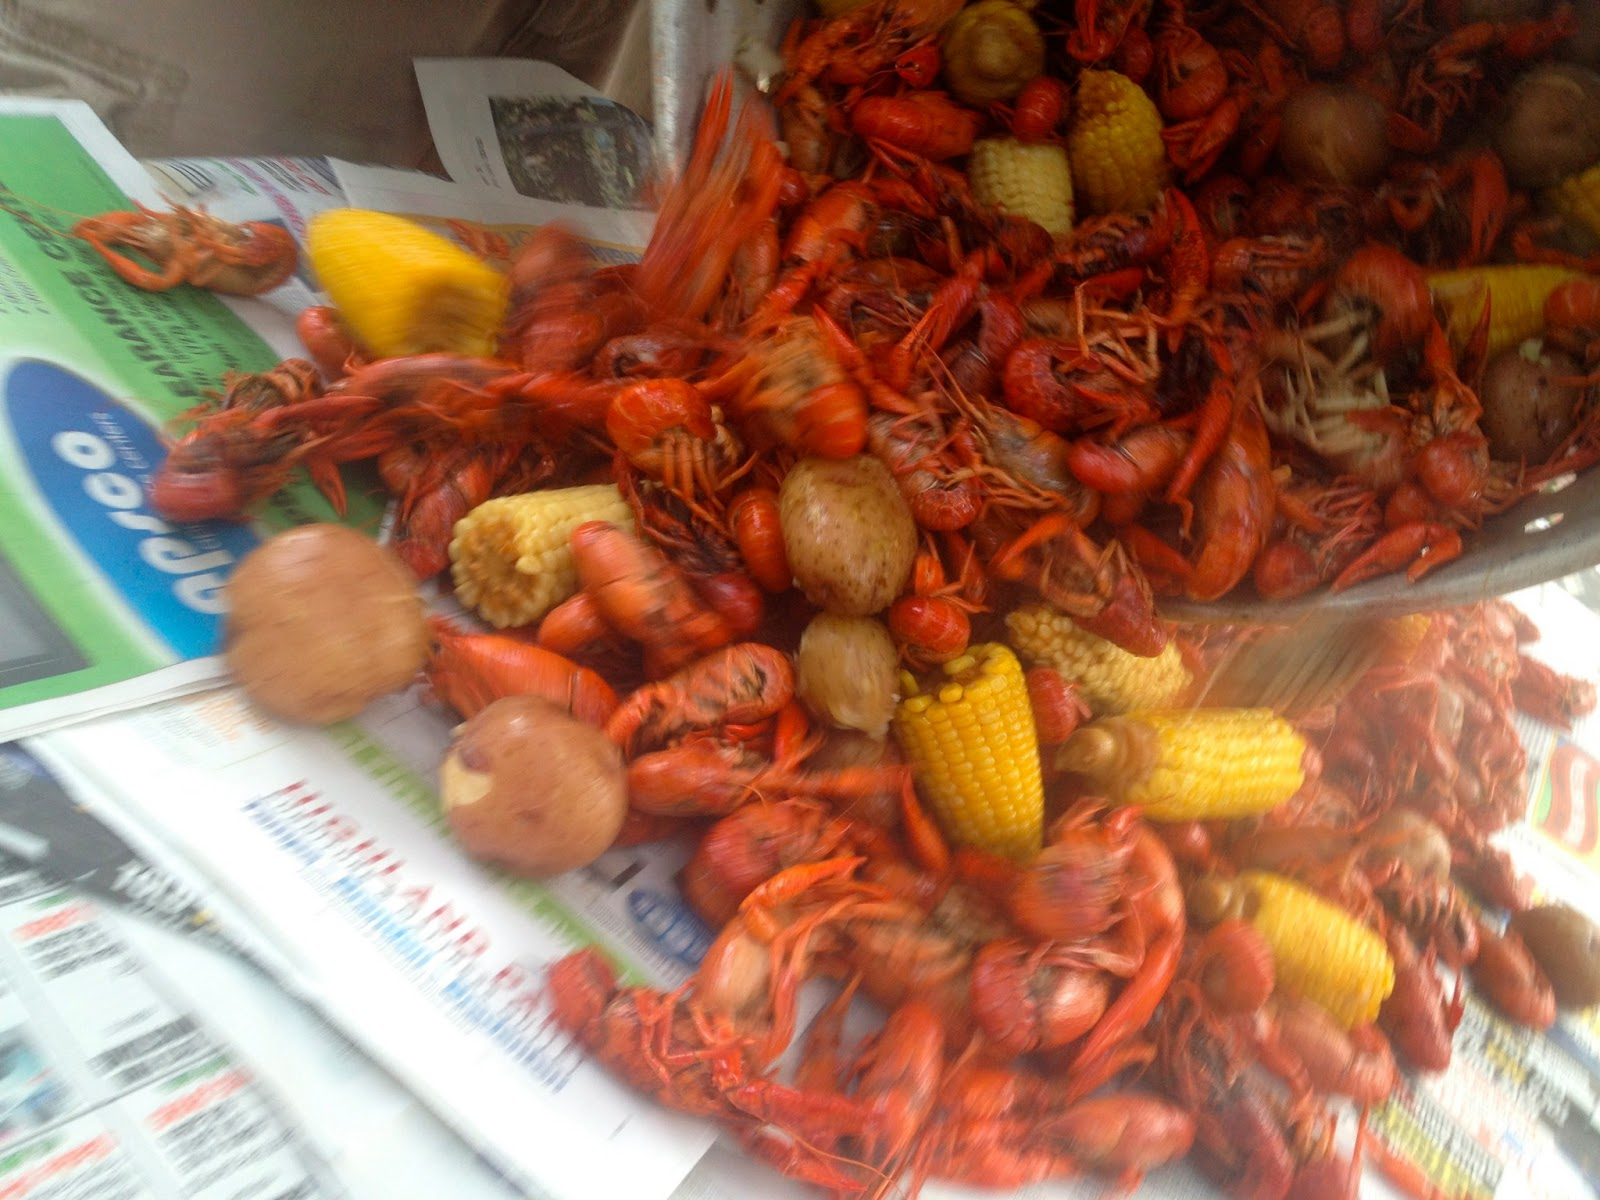 You're Probably Feeling Rather Intrigued And Impatient For A Crawfish Fest  Of Your Own You Might Want To Start Preparing Today Crawfish Season Runs  From